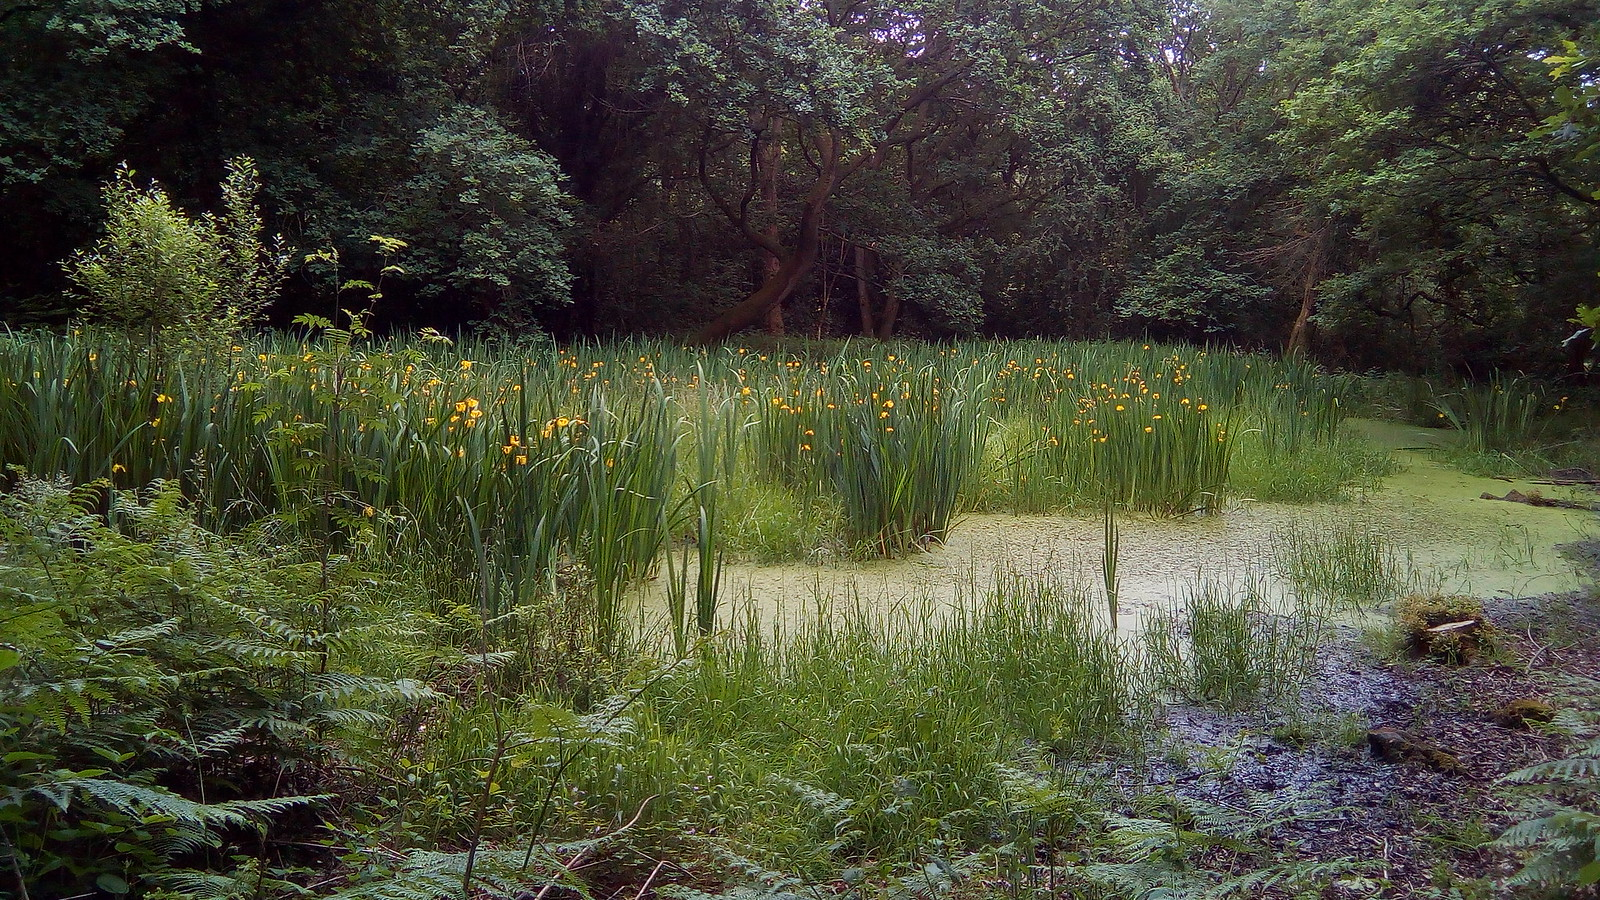 Pond and flowers